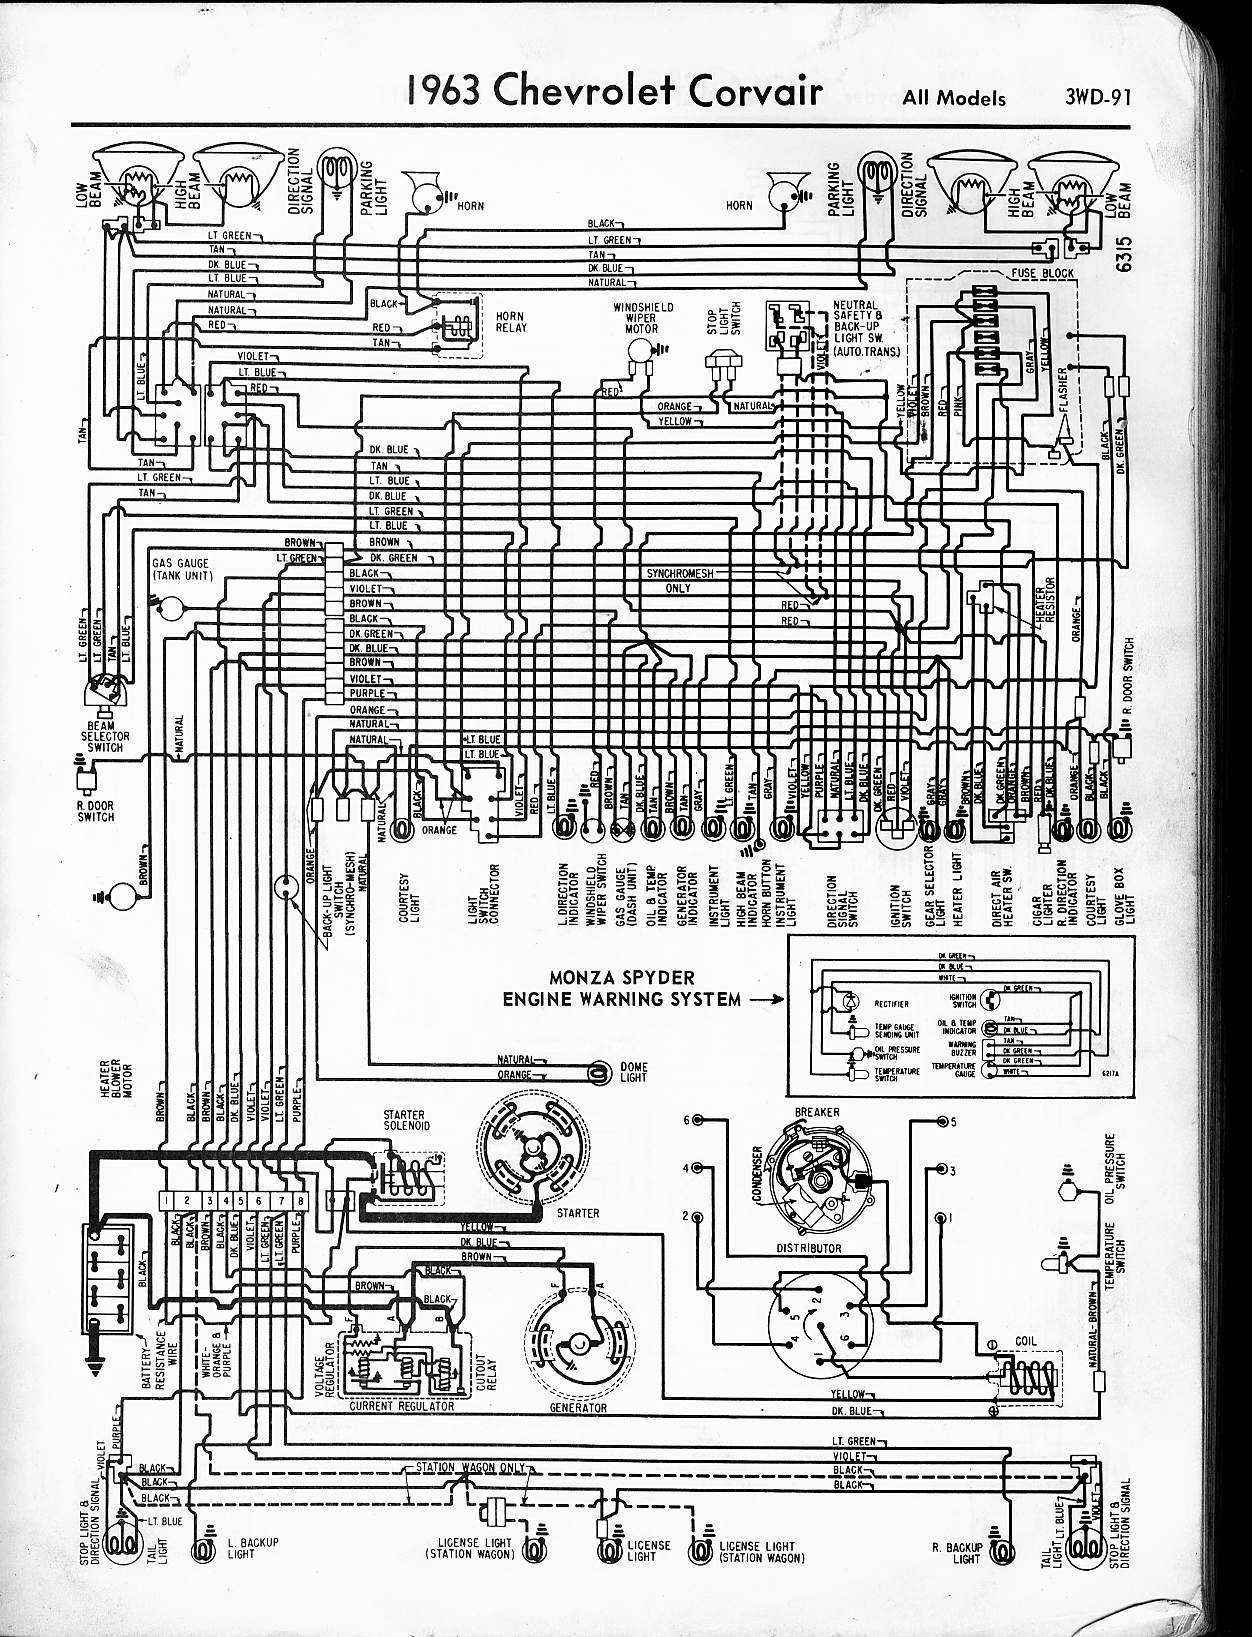 57 65 chevy wiring diagrams rh oldcarmanualproject com 1966 Chevy Impala Wiring Diagram 2000 Chevy Impala Wiring Diagram